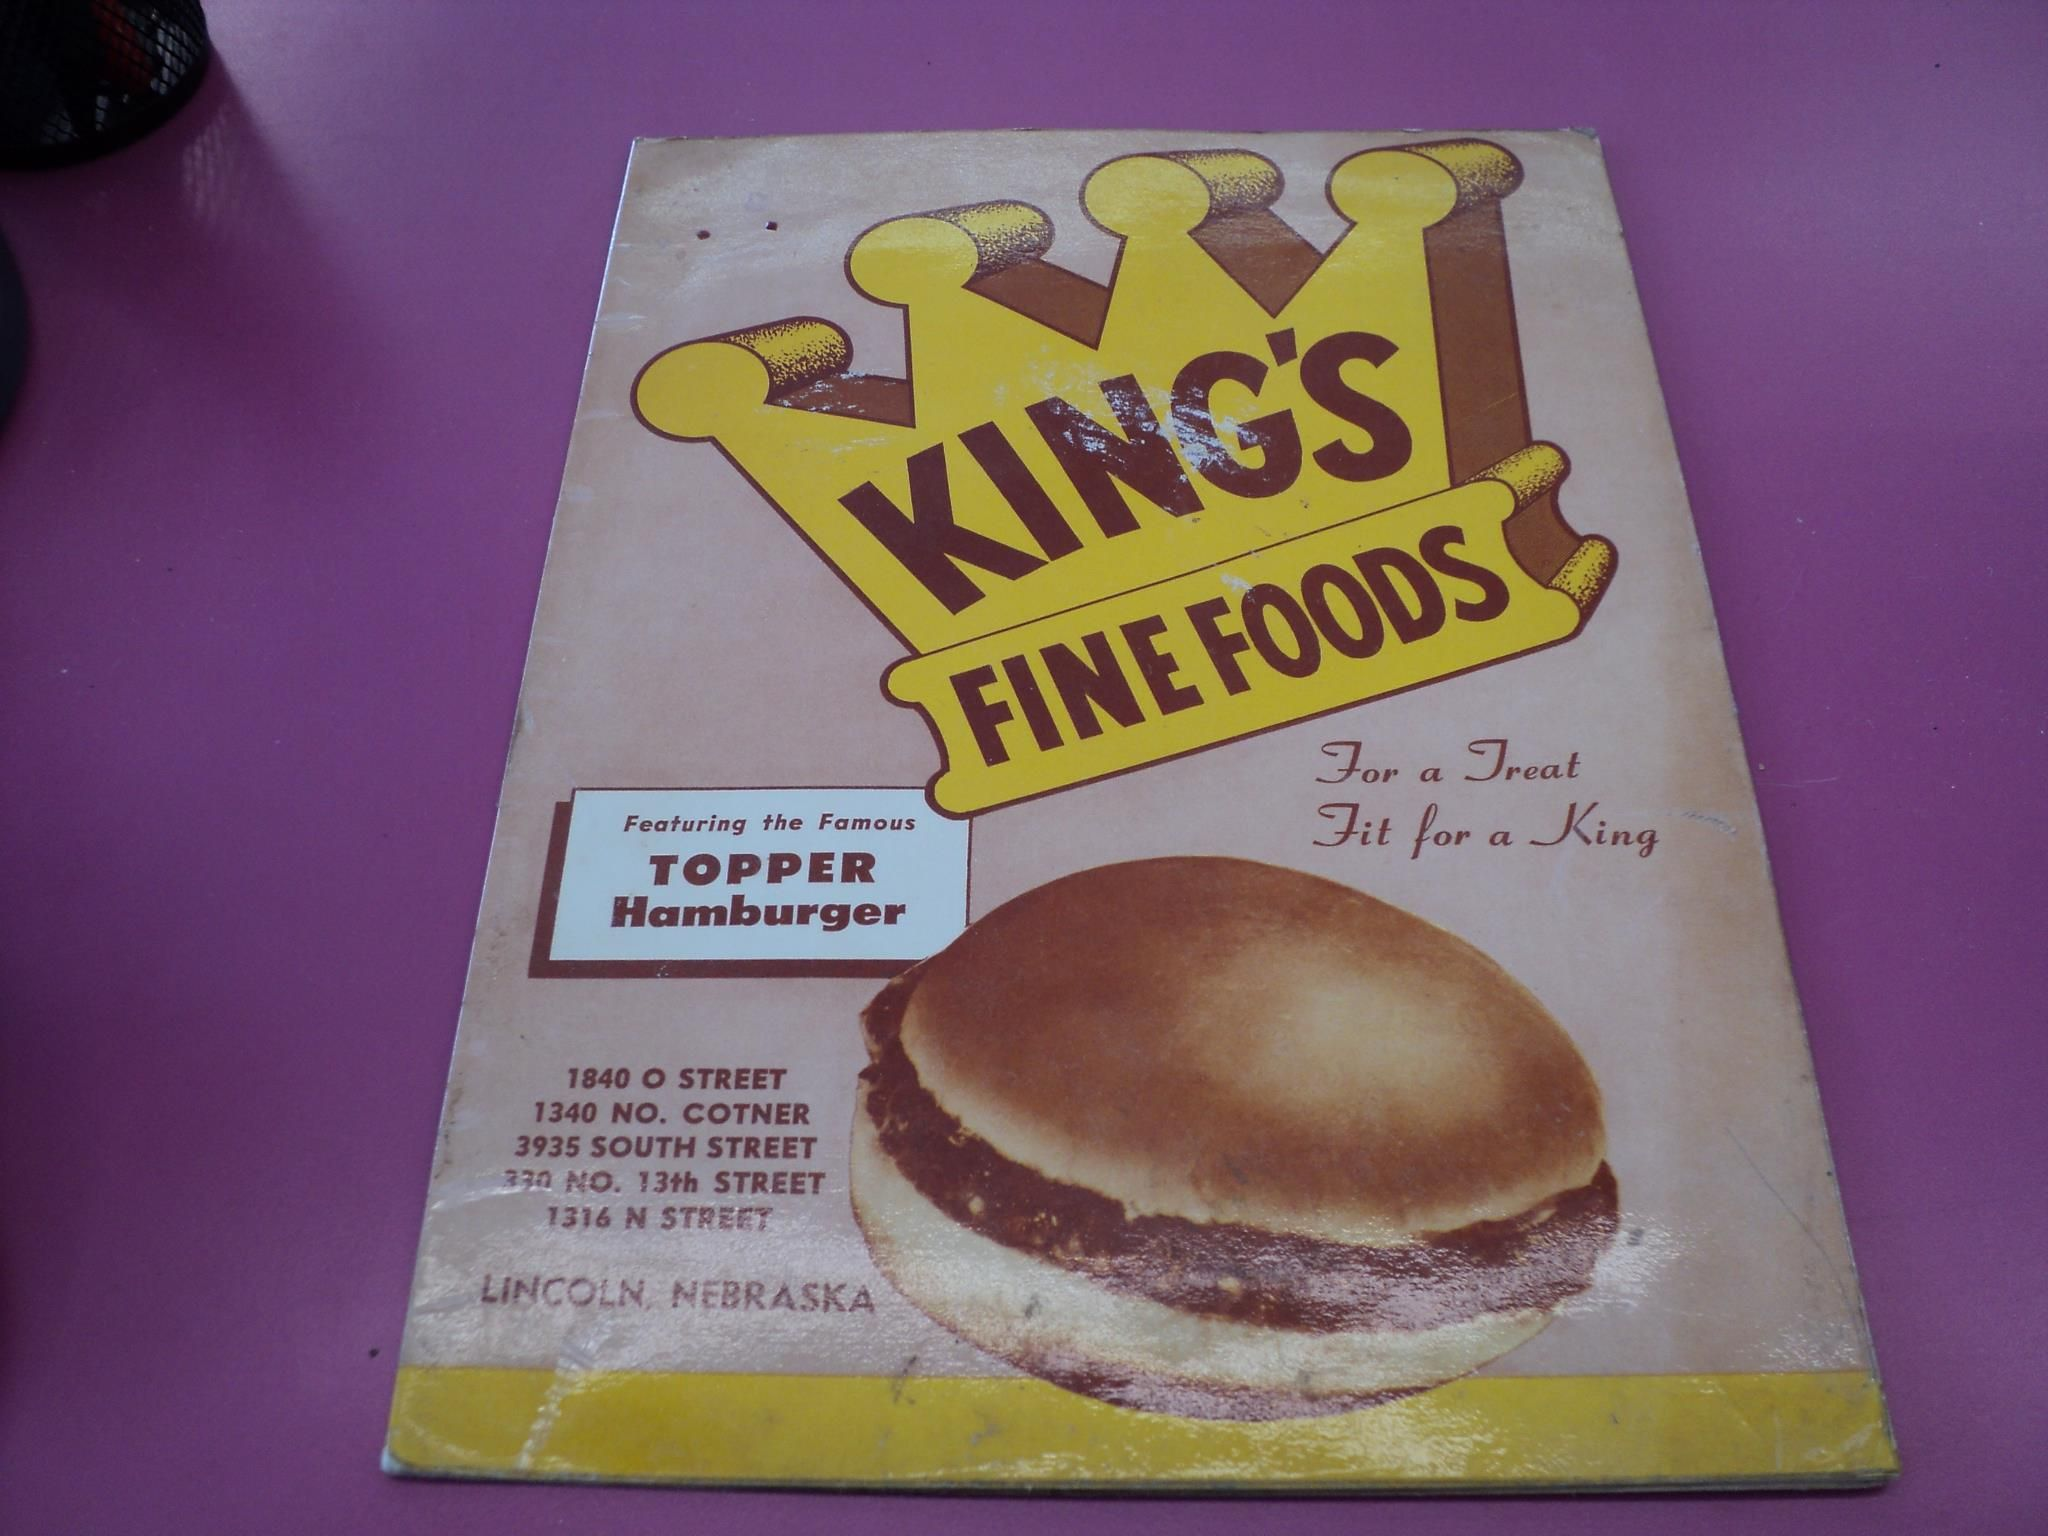 Kings Food Host Menu This Menu Is From The Lincoln Ne Locations It S A Safe Bet Those Locations Had Tables With Phones And Ser King Food Food Vintage Recipes